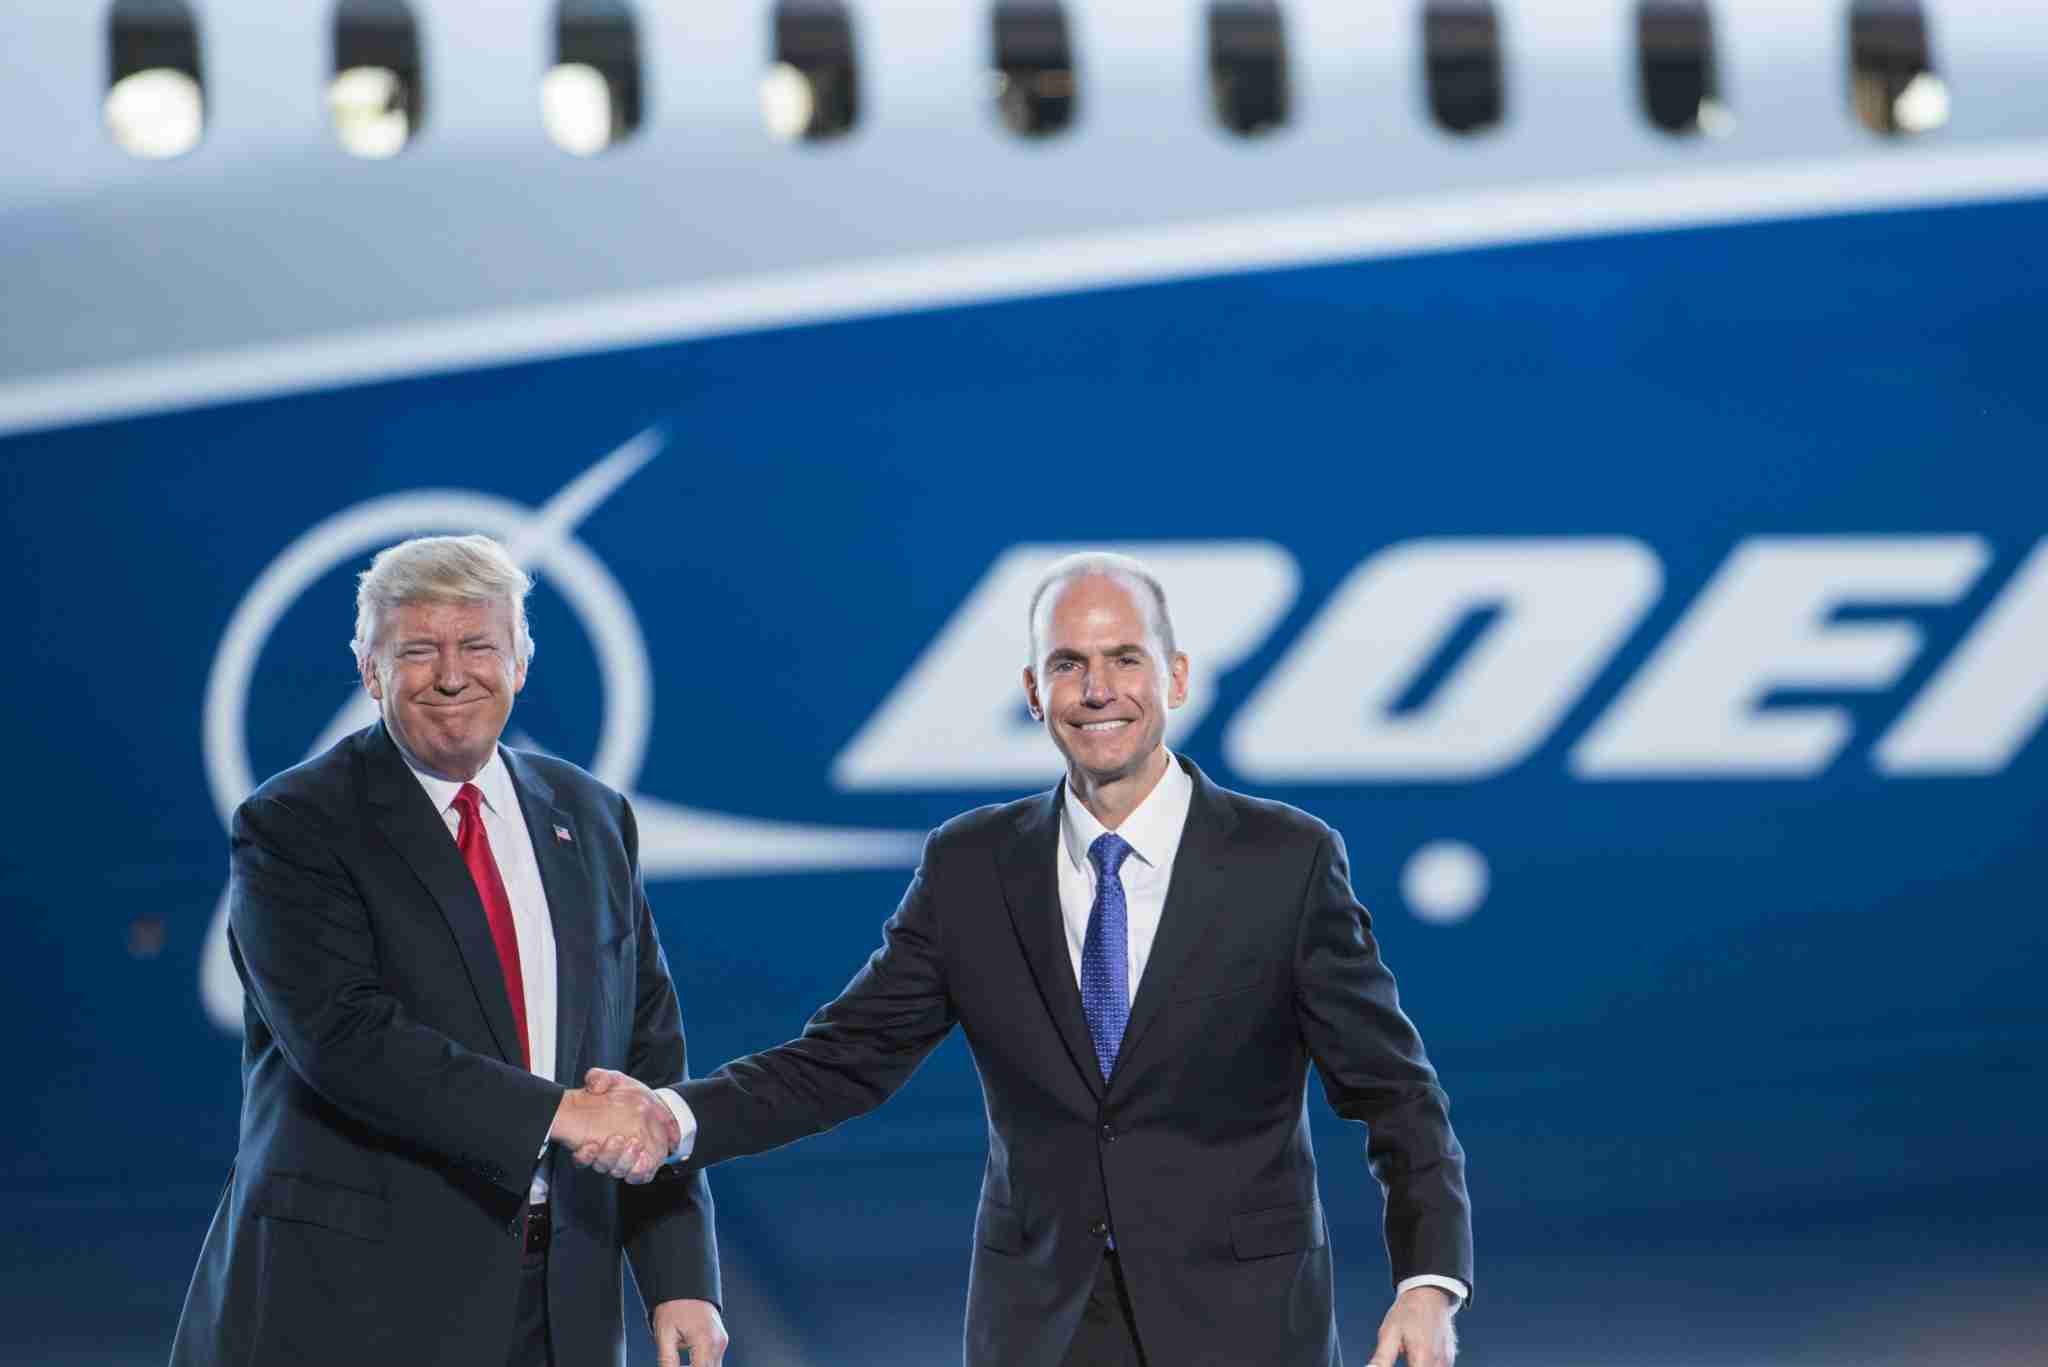 NORTH CHARLESTON, SC - FEBRUARY 17: U.S. President Donald Trump, left, is introduced by Boeing